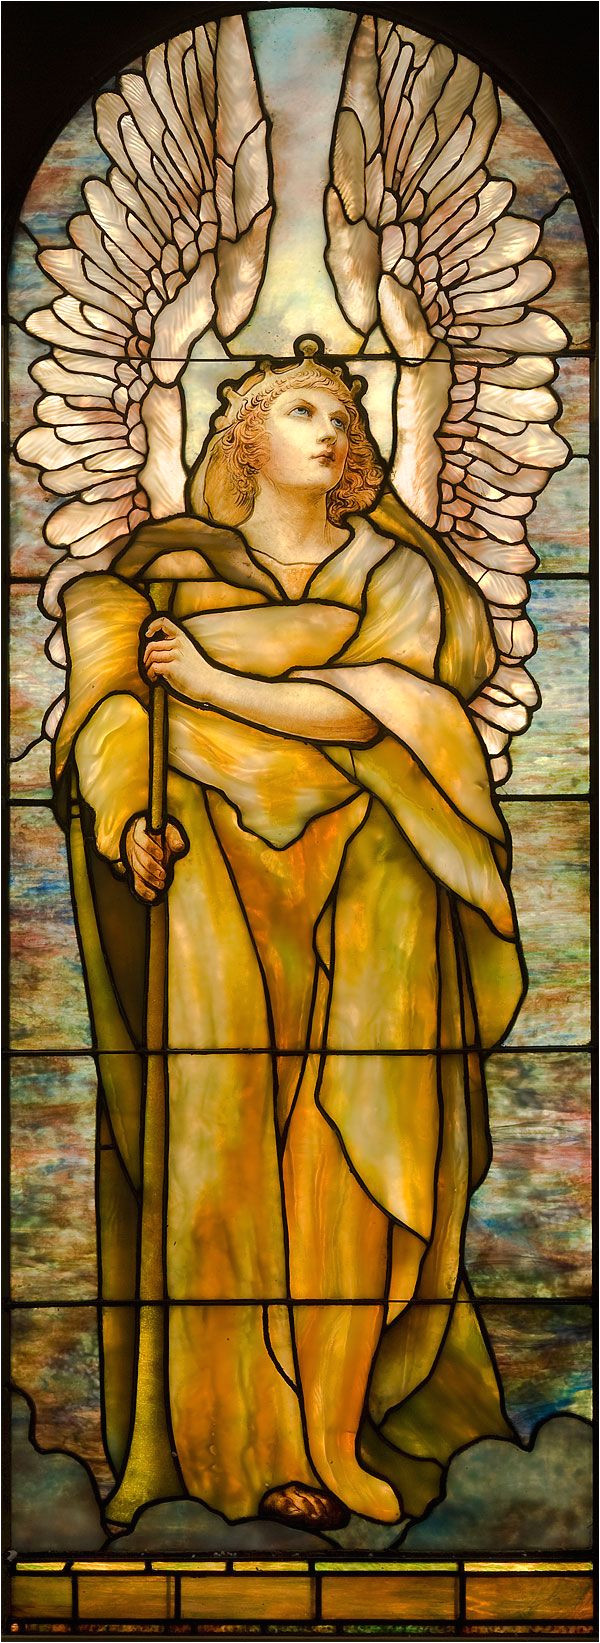 angel of the resurrection by louis c tiffany collection of the montreal museum of fine arts more on glass art stained glass